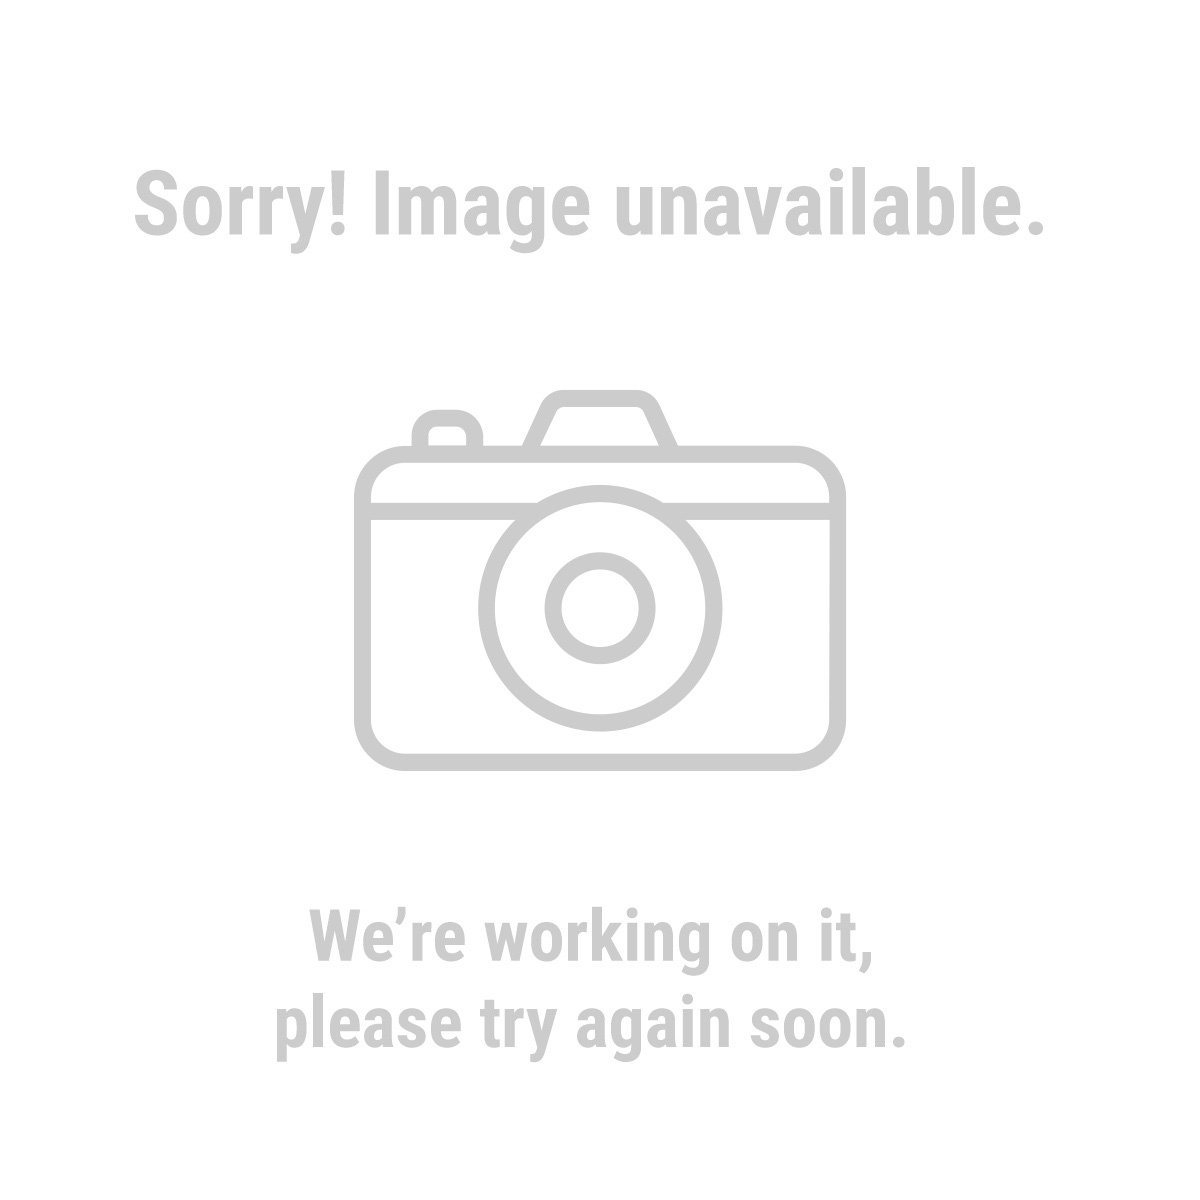 Warrior 61582 1/8 in. Titanium Nitride High Speed Steel Drill Bits,  Piece